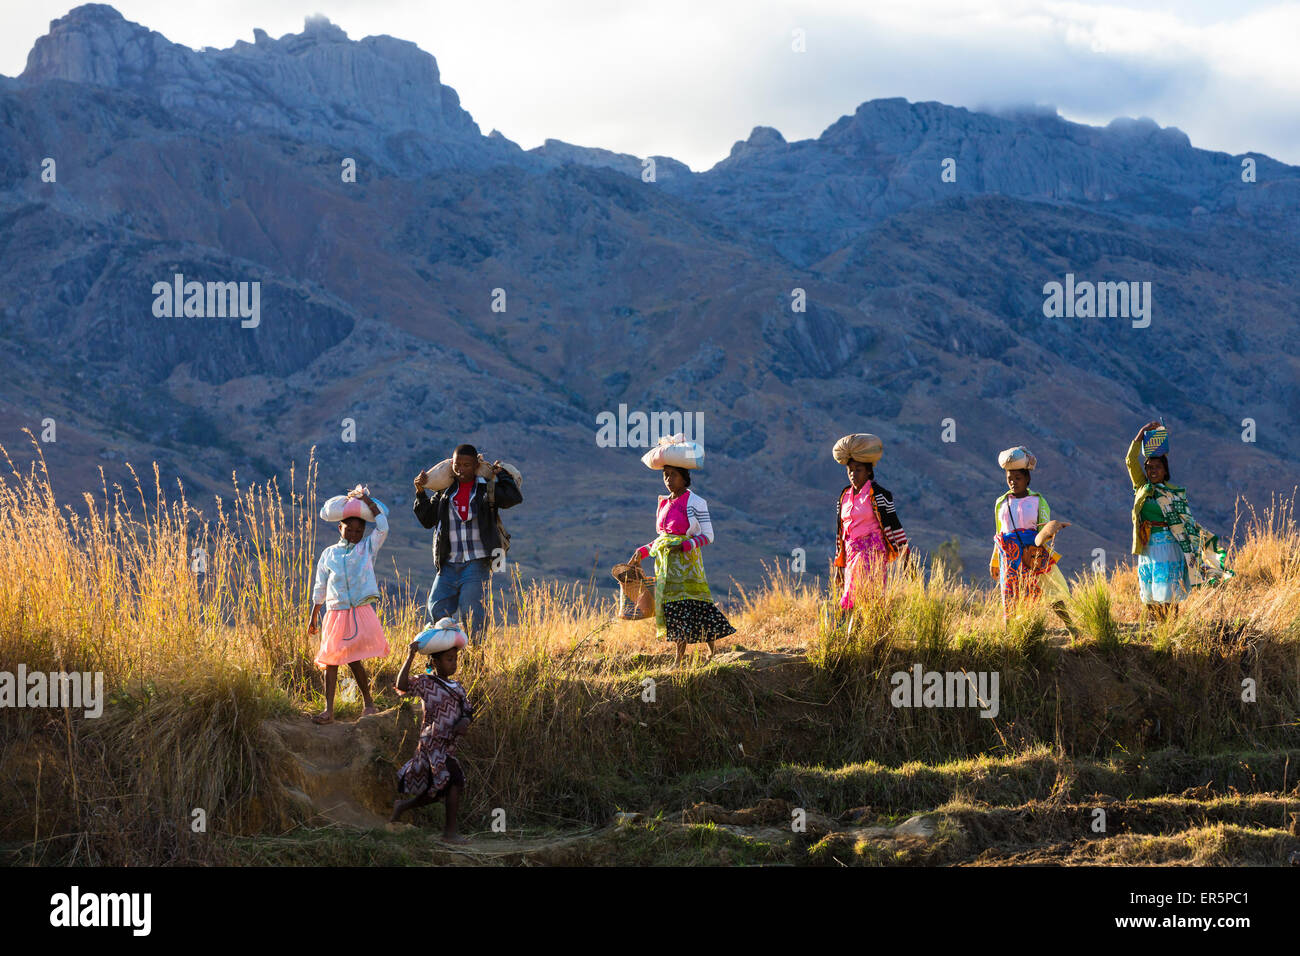 Malagasy people in the Tsaranoro Valley, highlands, South Madagascar, Africa - Stock Image